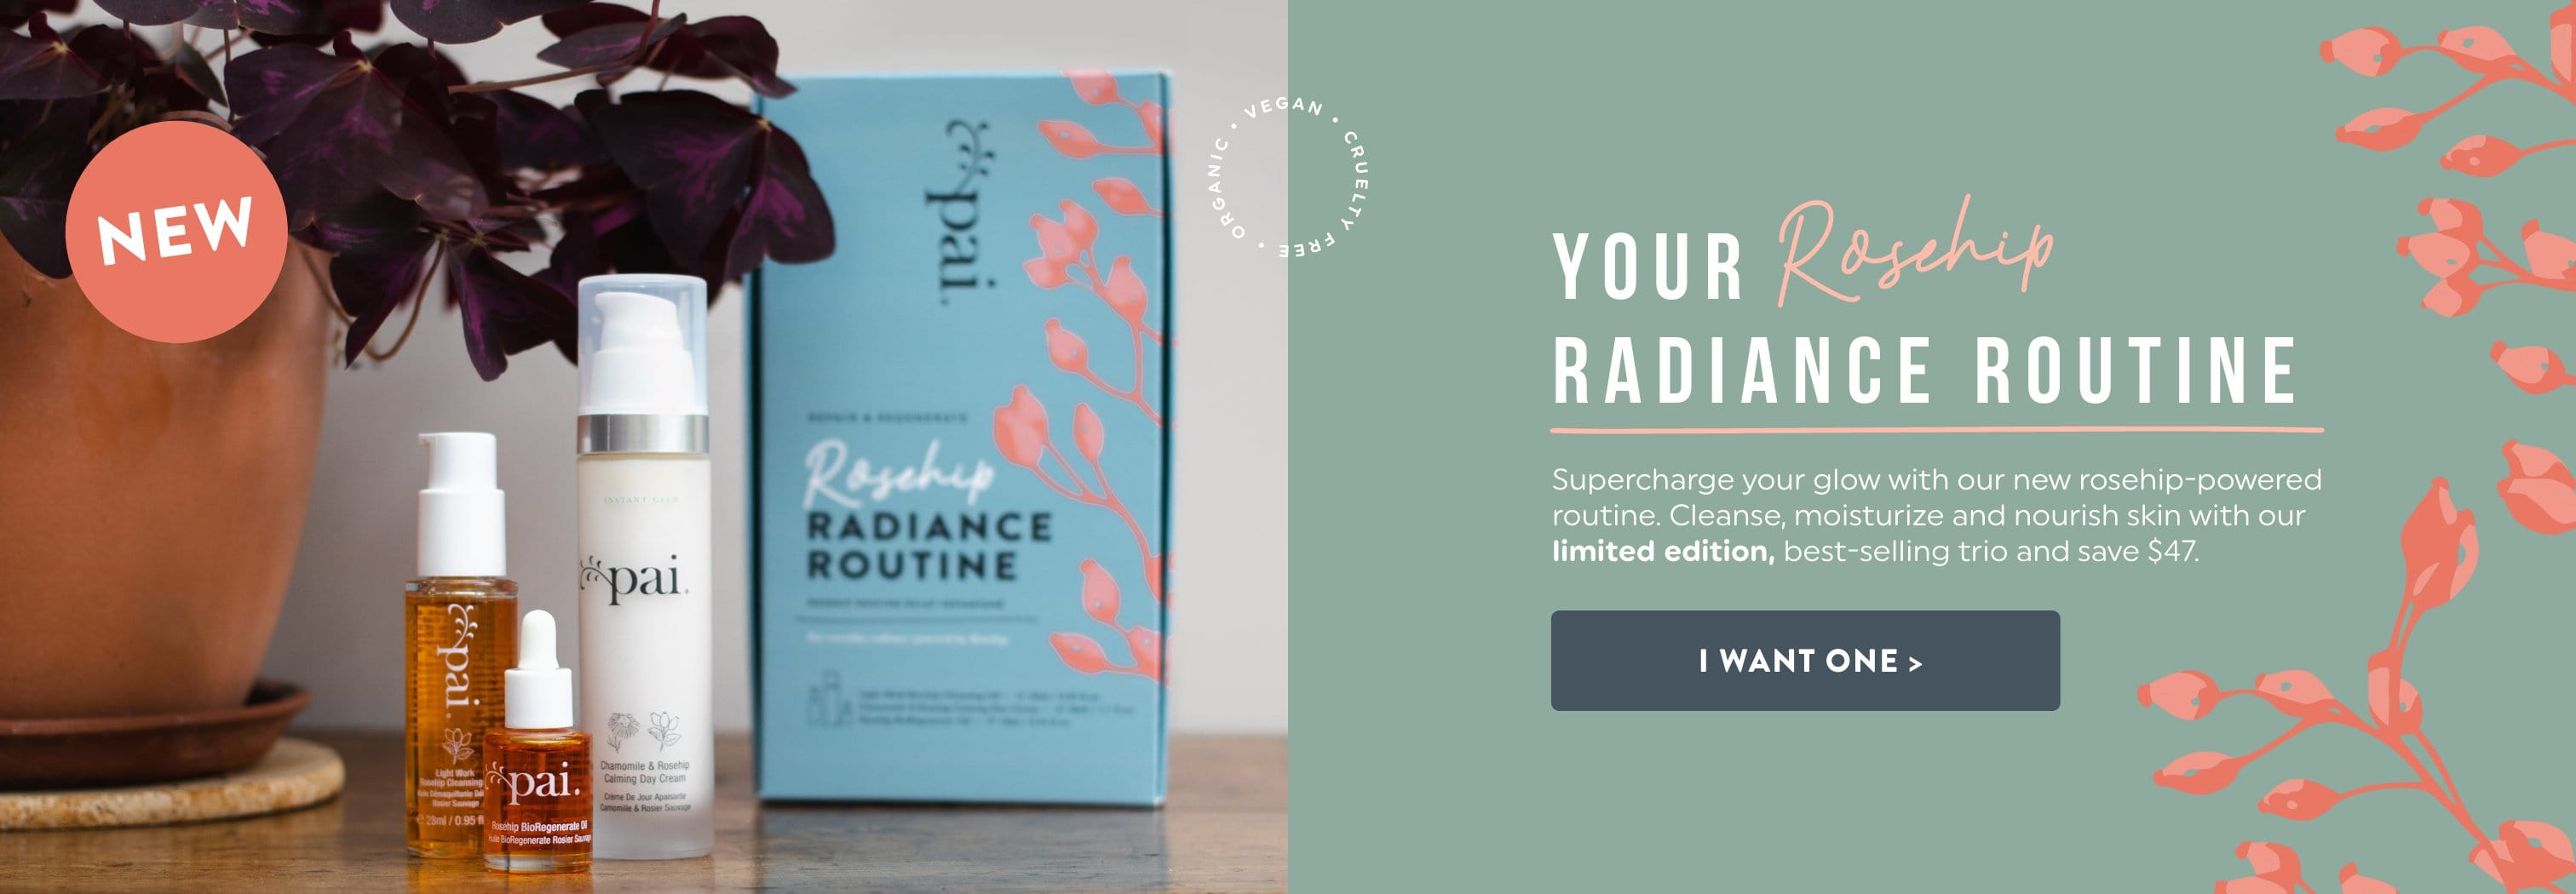 New: Rosehip Radiance Routine Kit